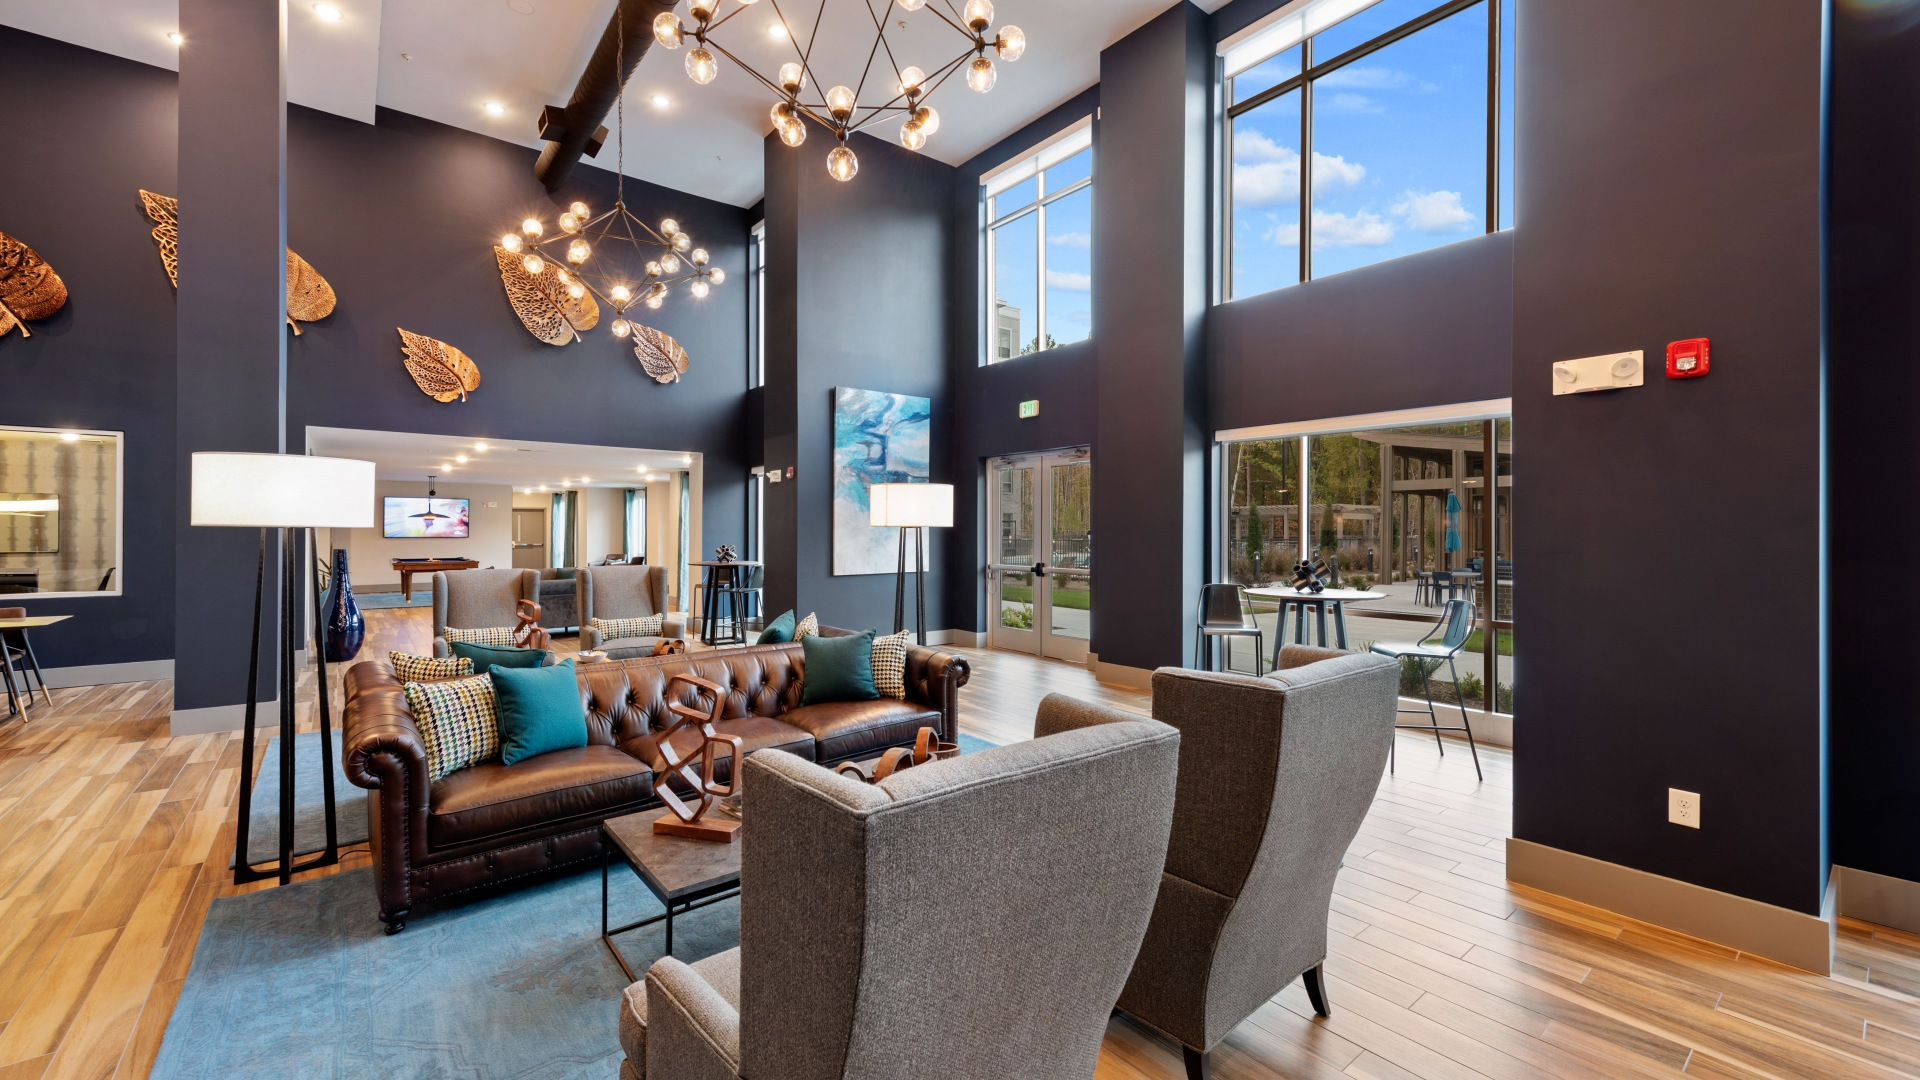 Resident lounge with comfortable chairs and stylish decor at our luxury apartments in Cary, NC